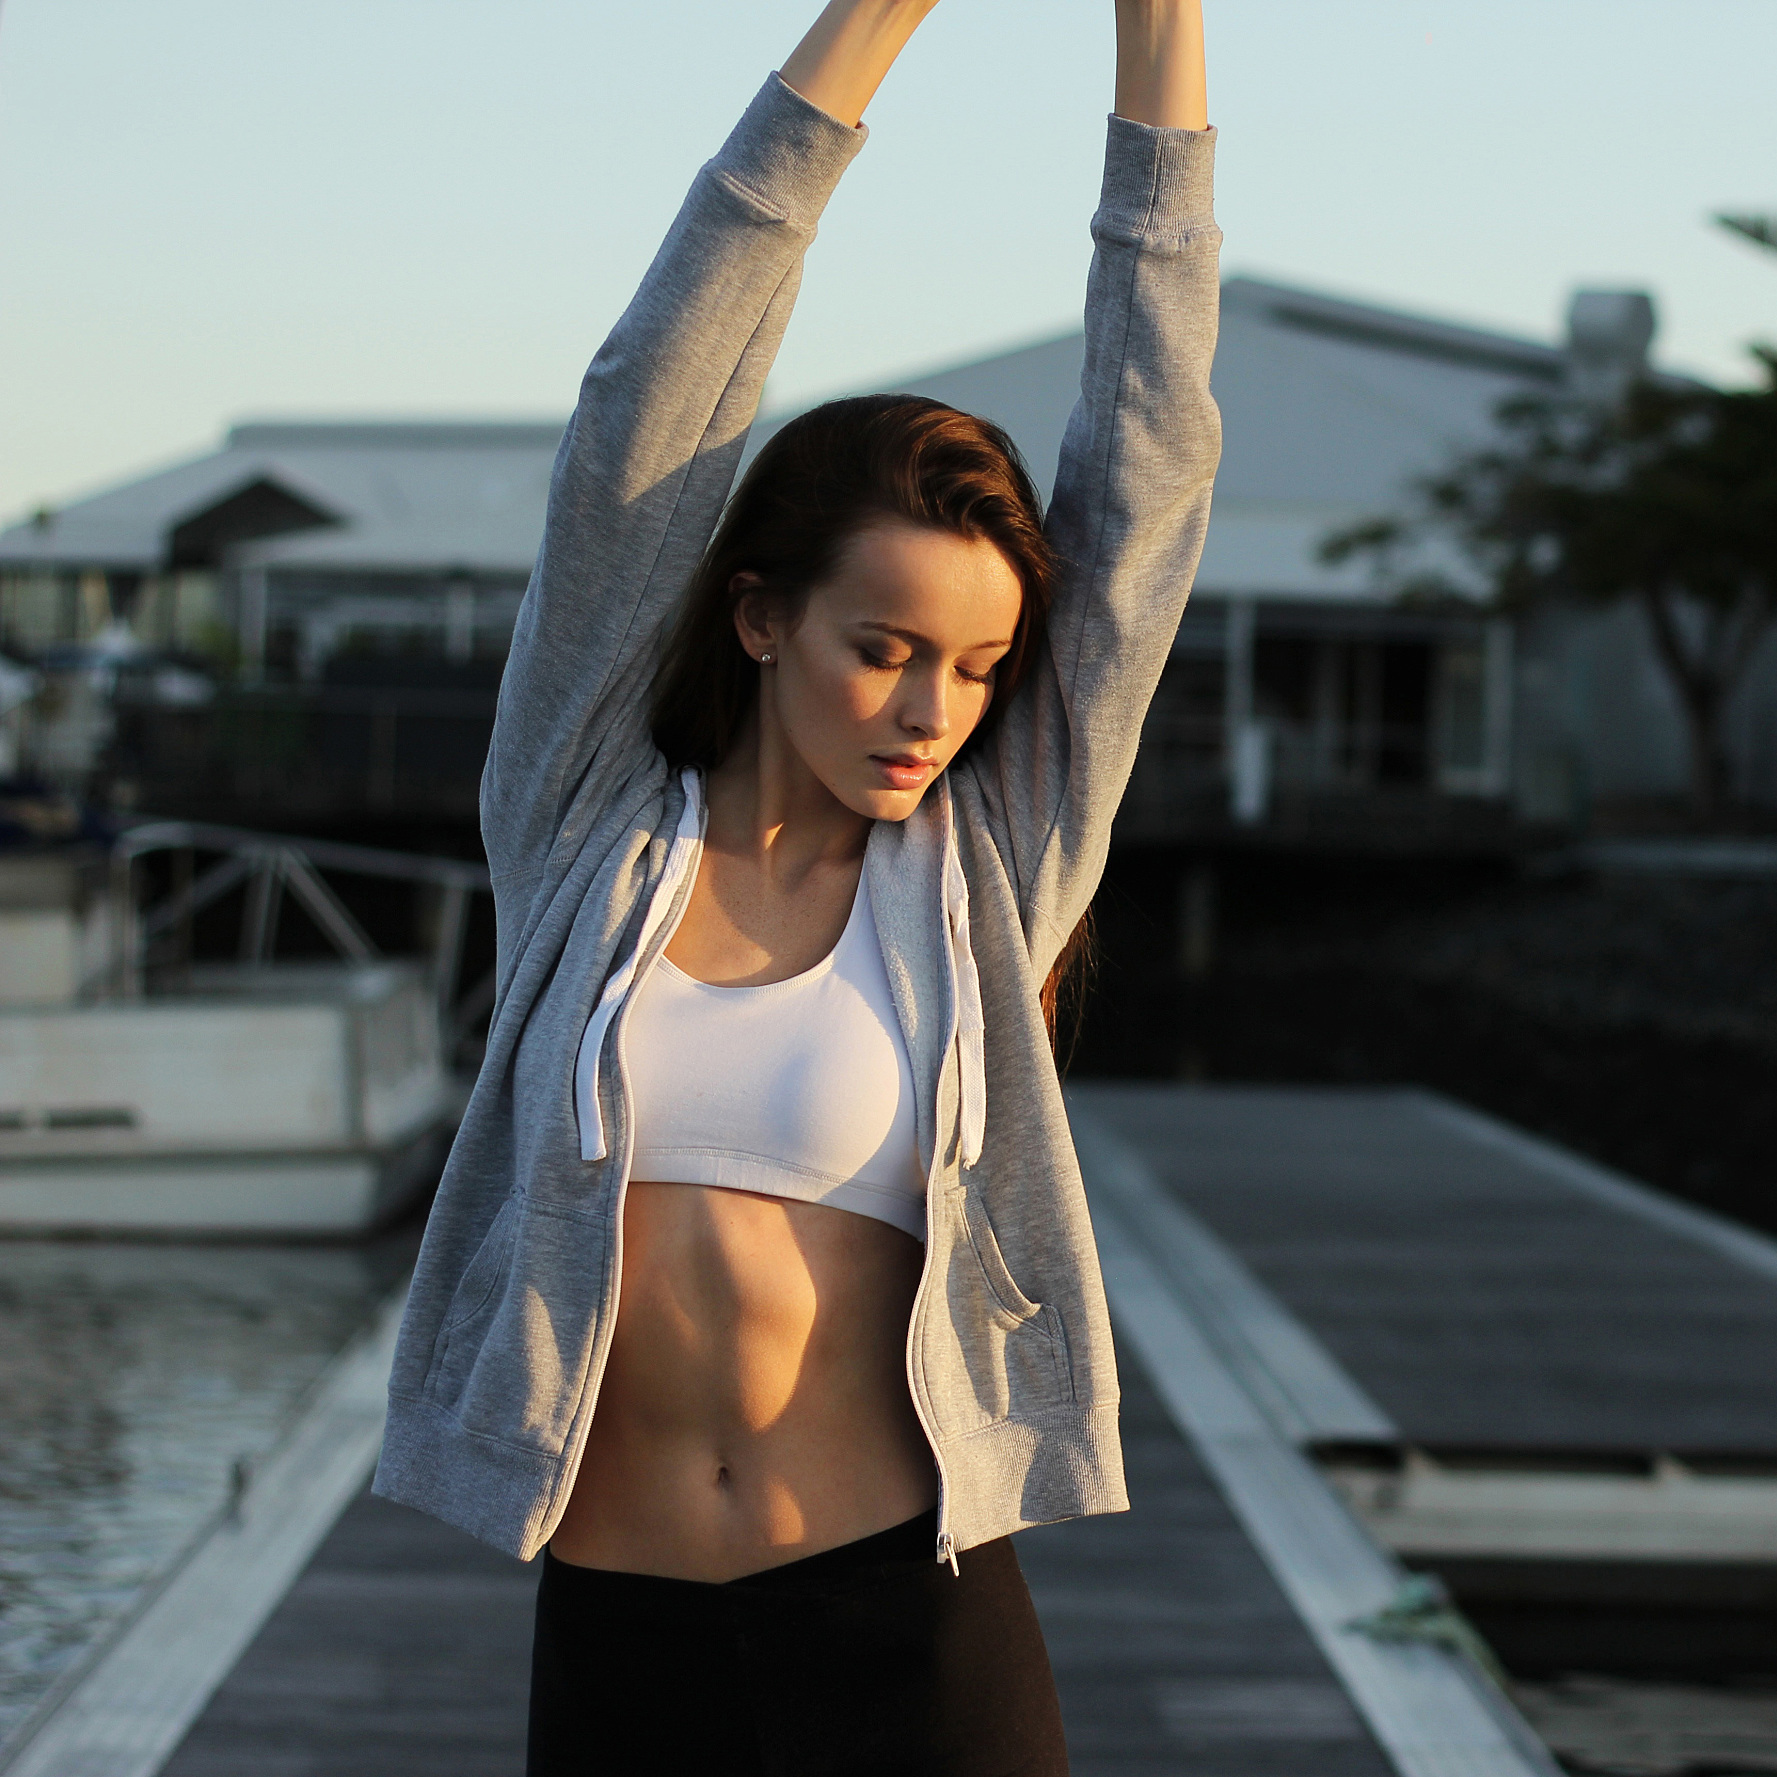 woman-stretching-dock-1115.jpg (skyword:203342)